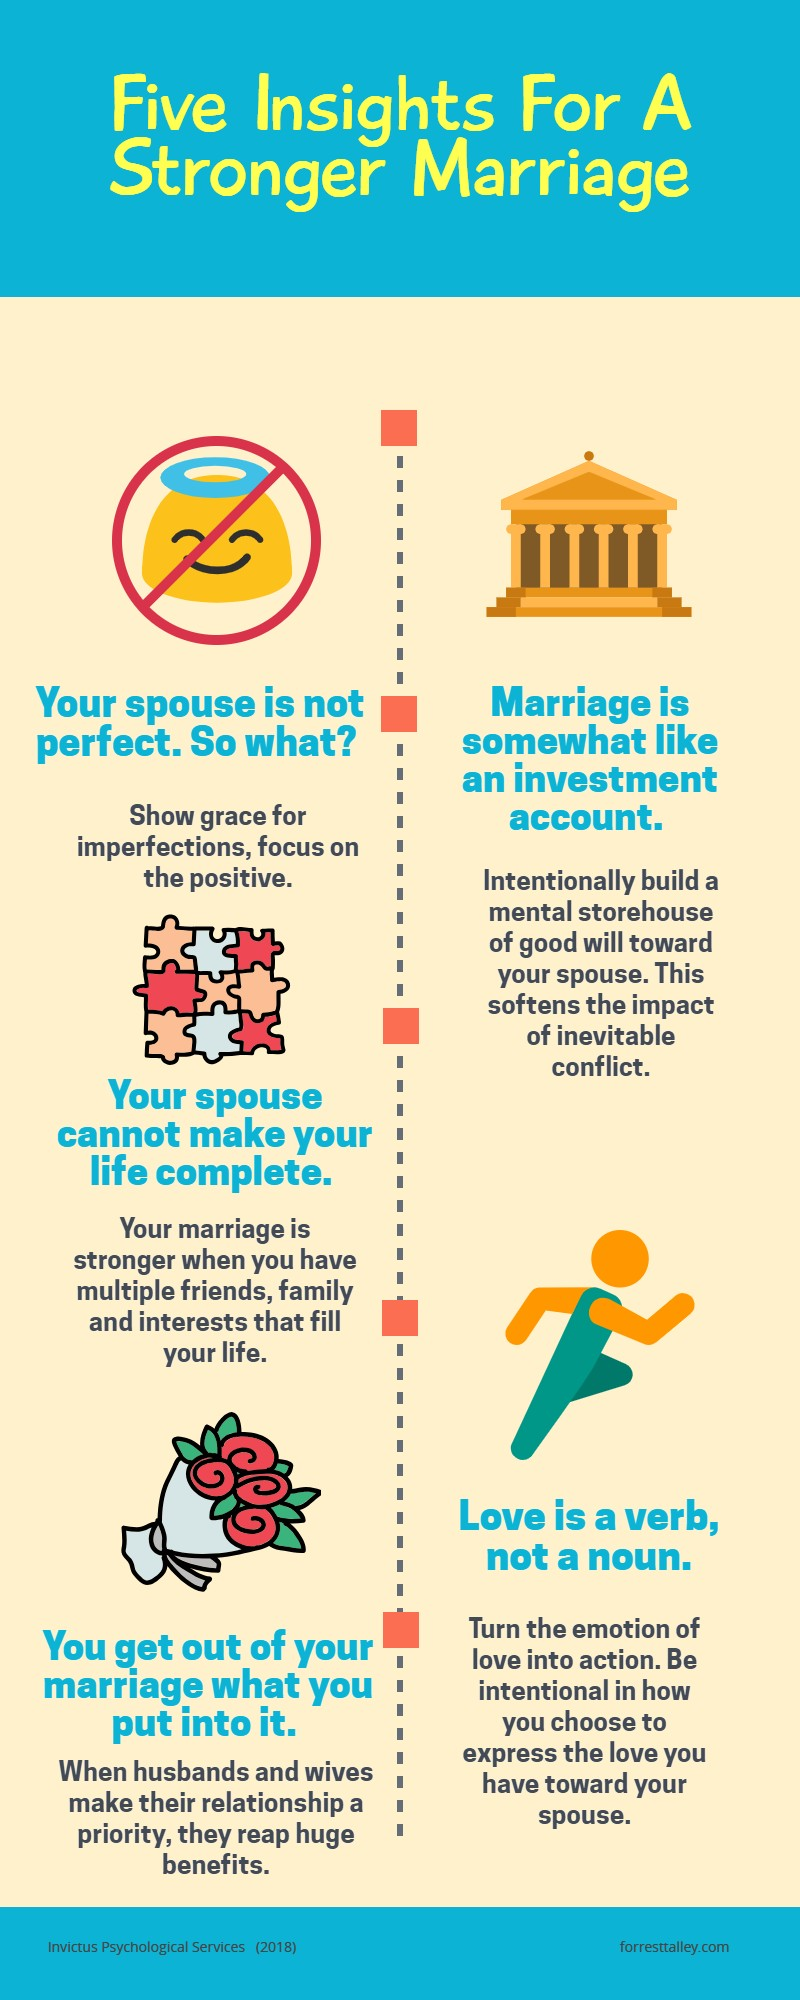 Marriage: 5 rules for a strong marriage in Folsom, El Dorado Hills and Granite Bay